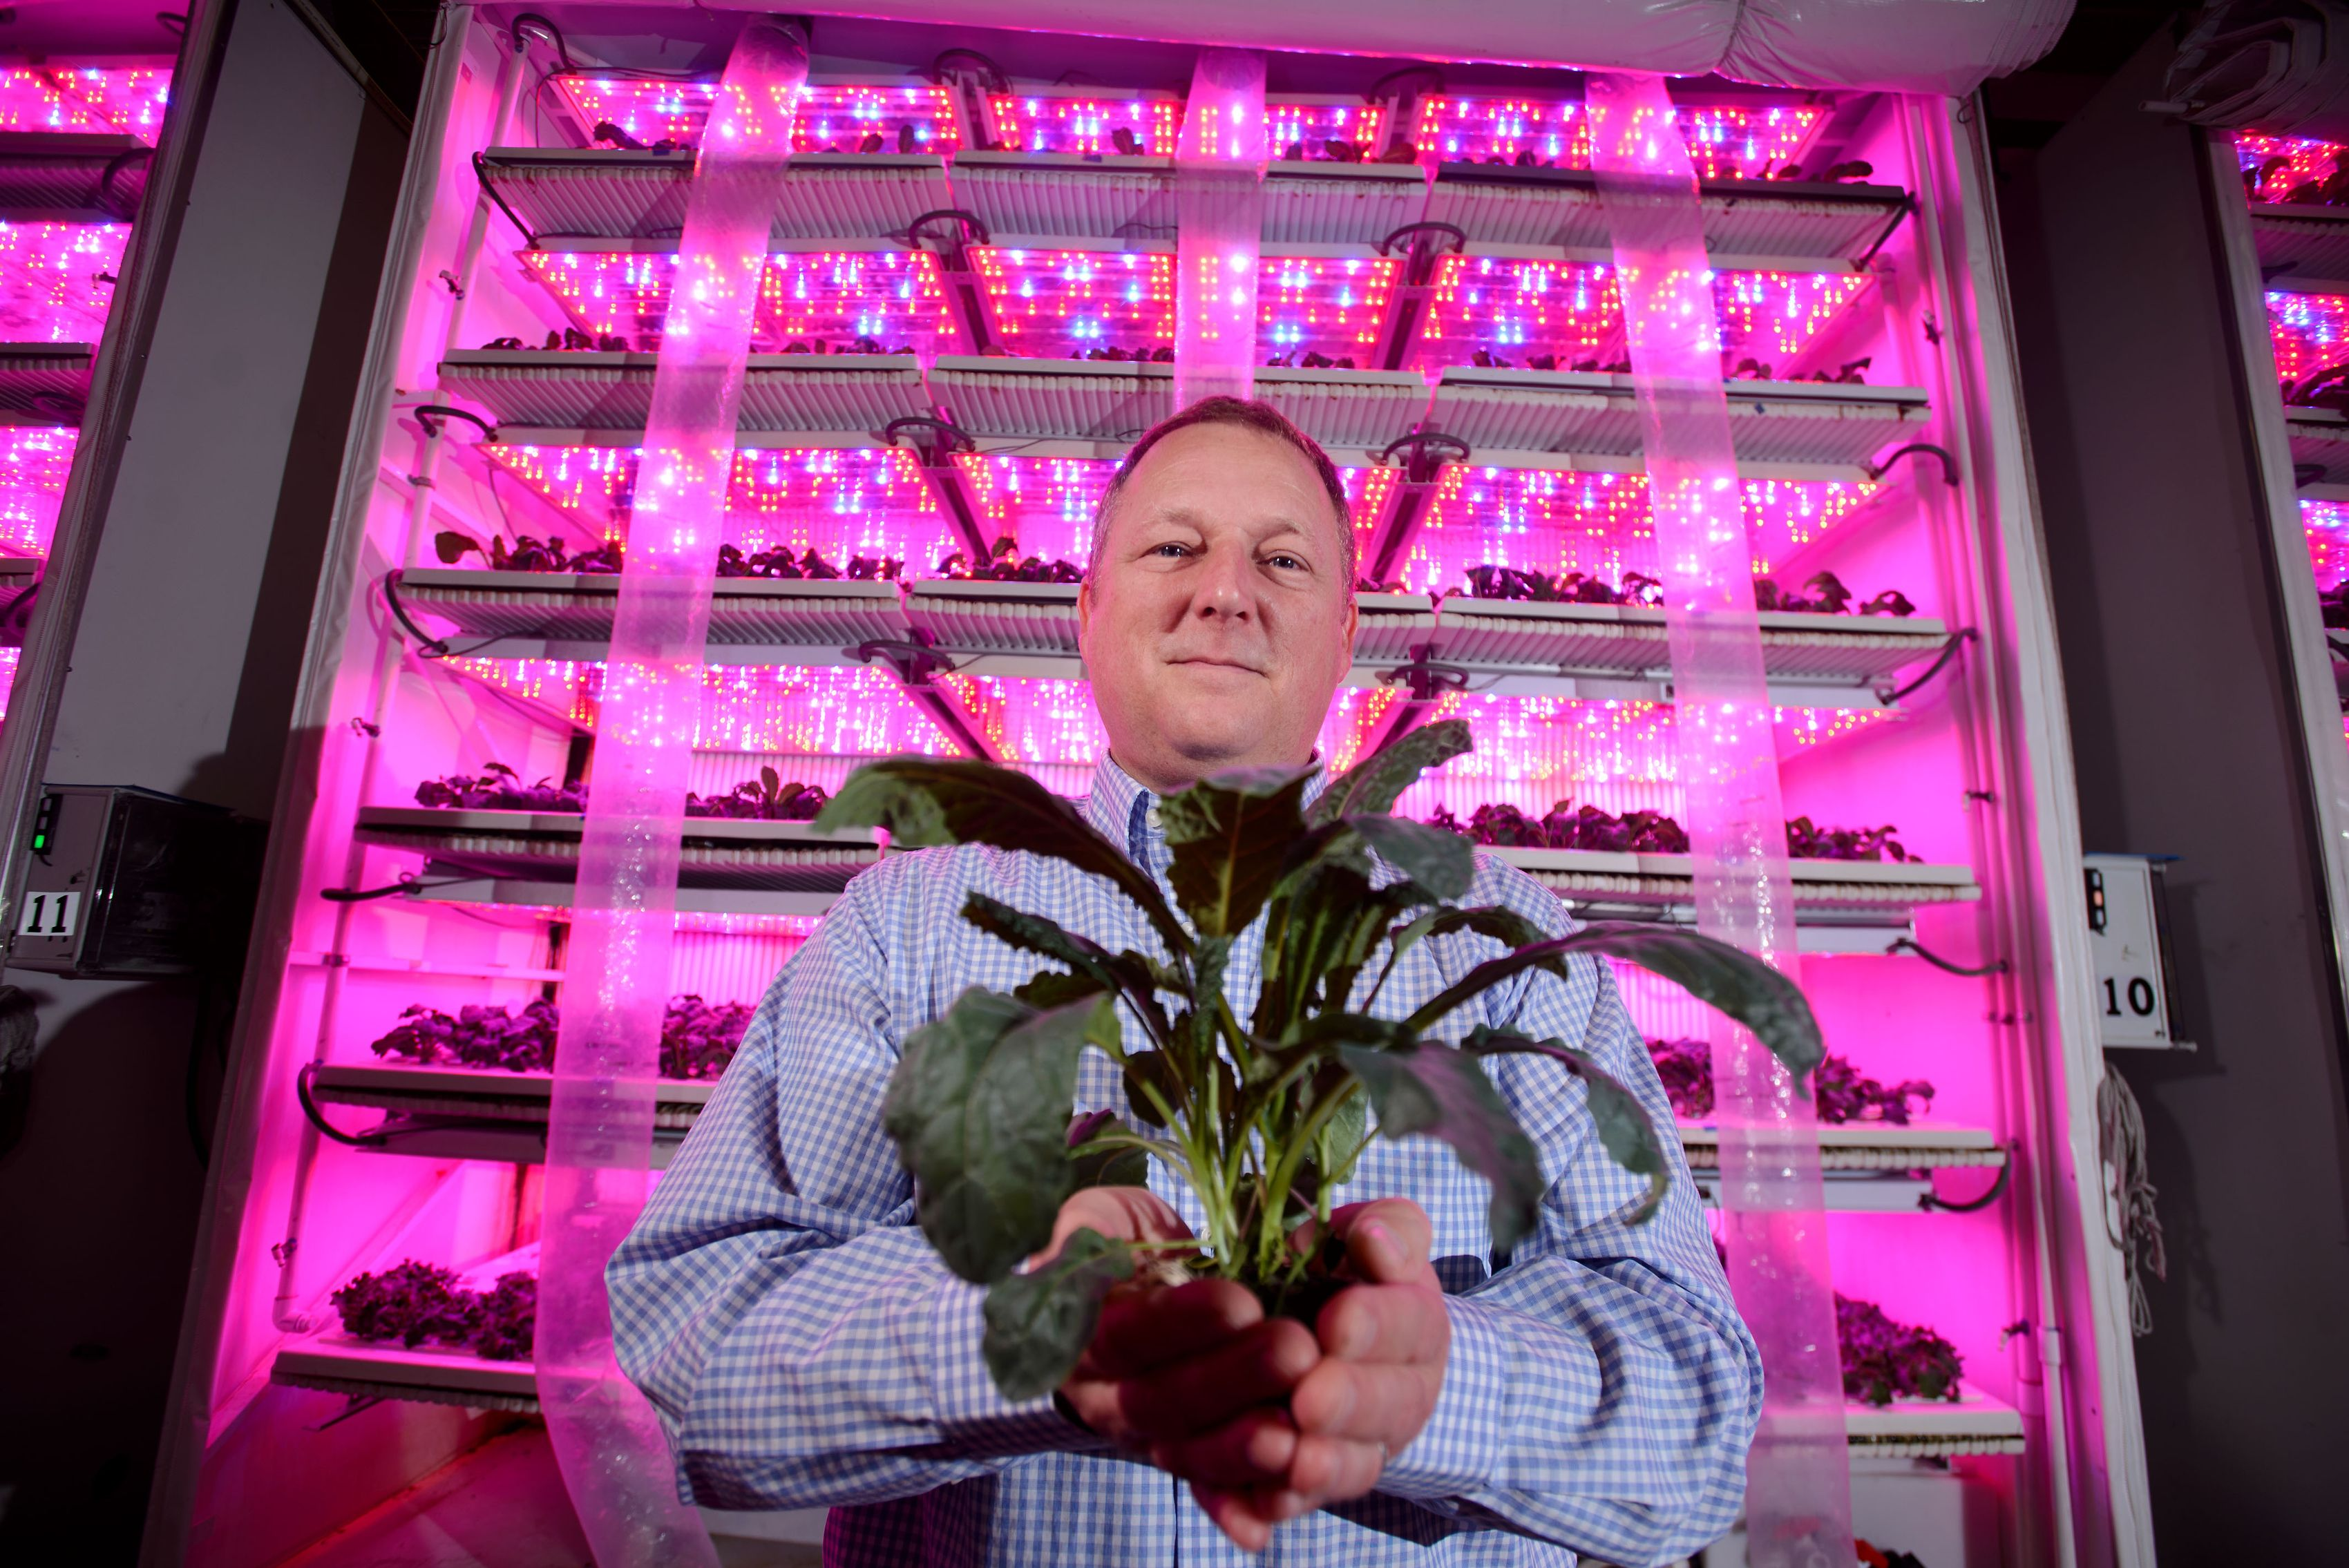 Our fearless founder and CEO, Steve Fambro, photo'd by OC Register.